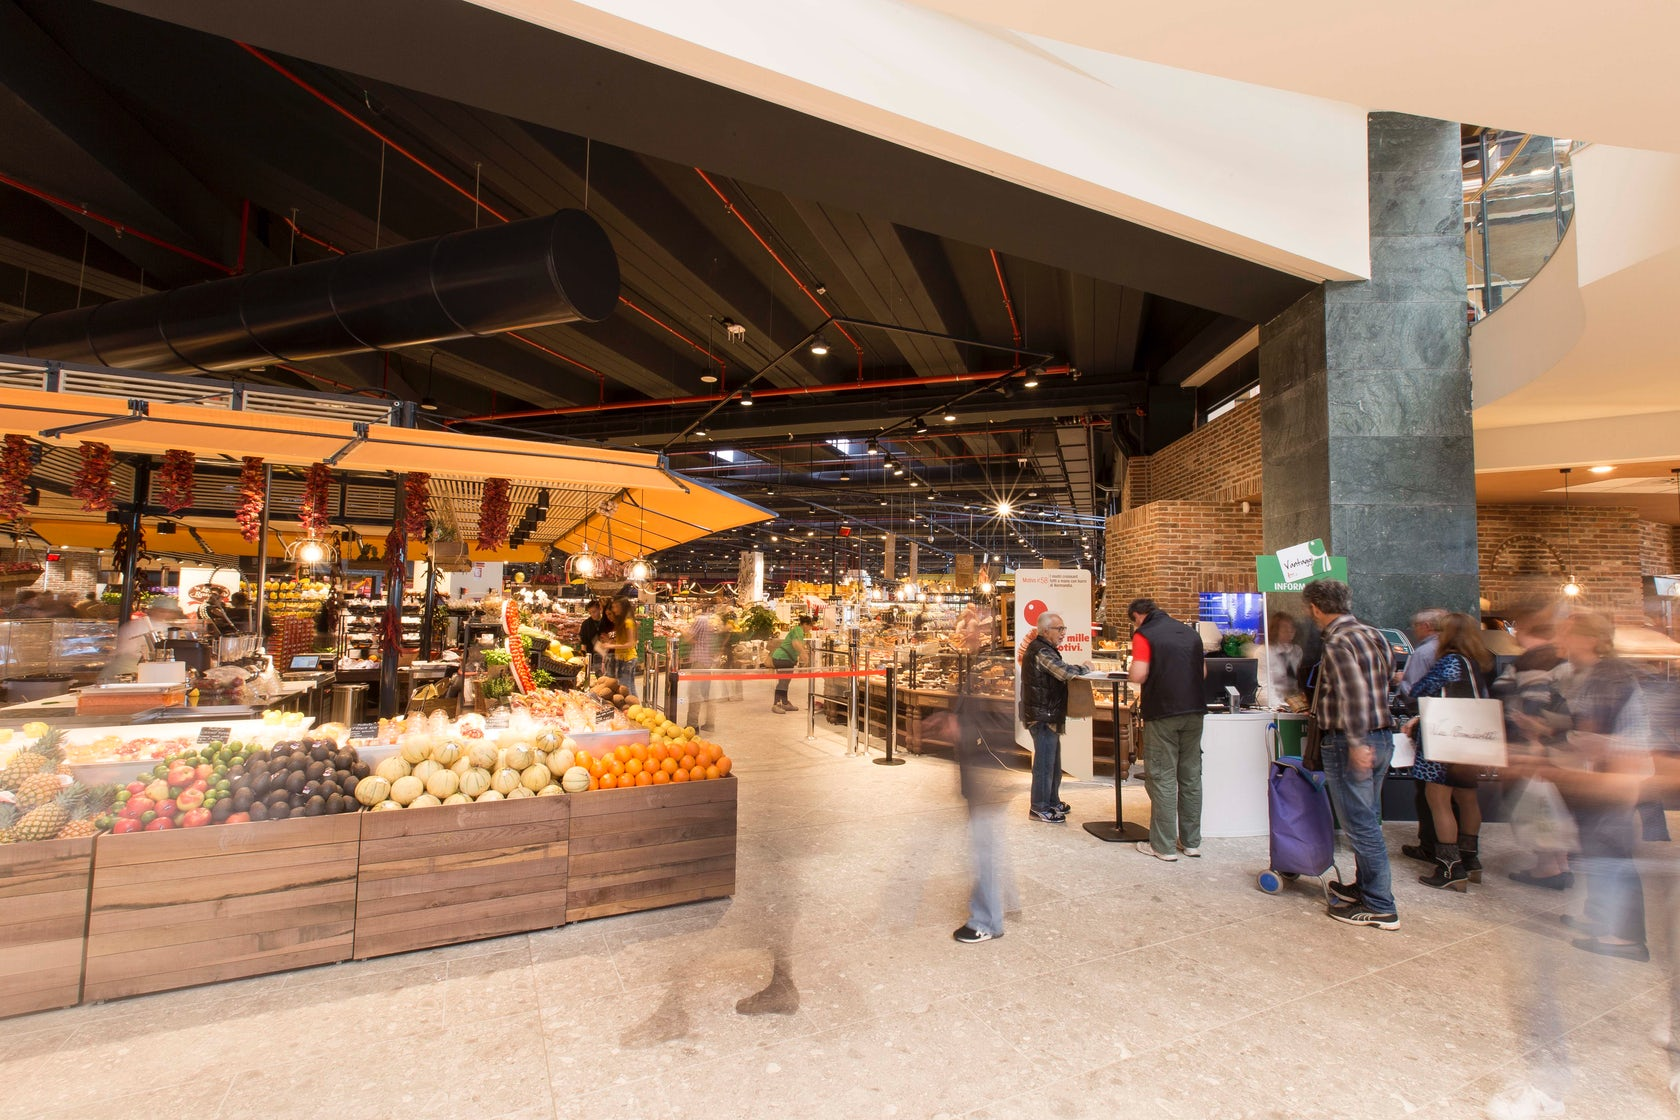 IL CENTRO - Arese Shopping Center on Architizer